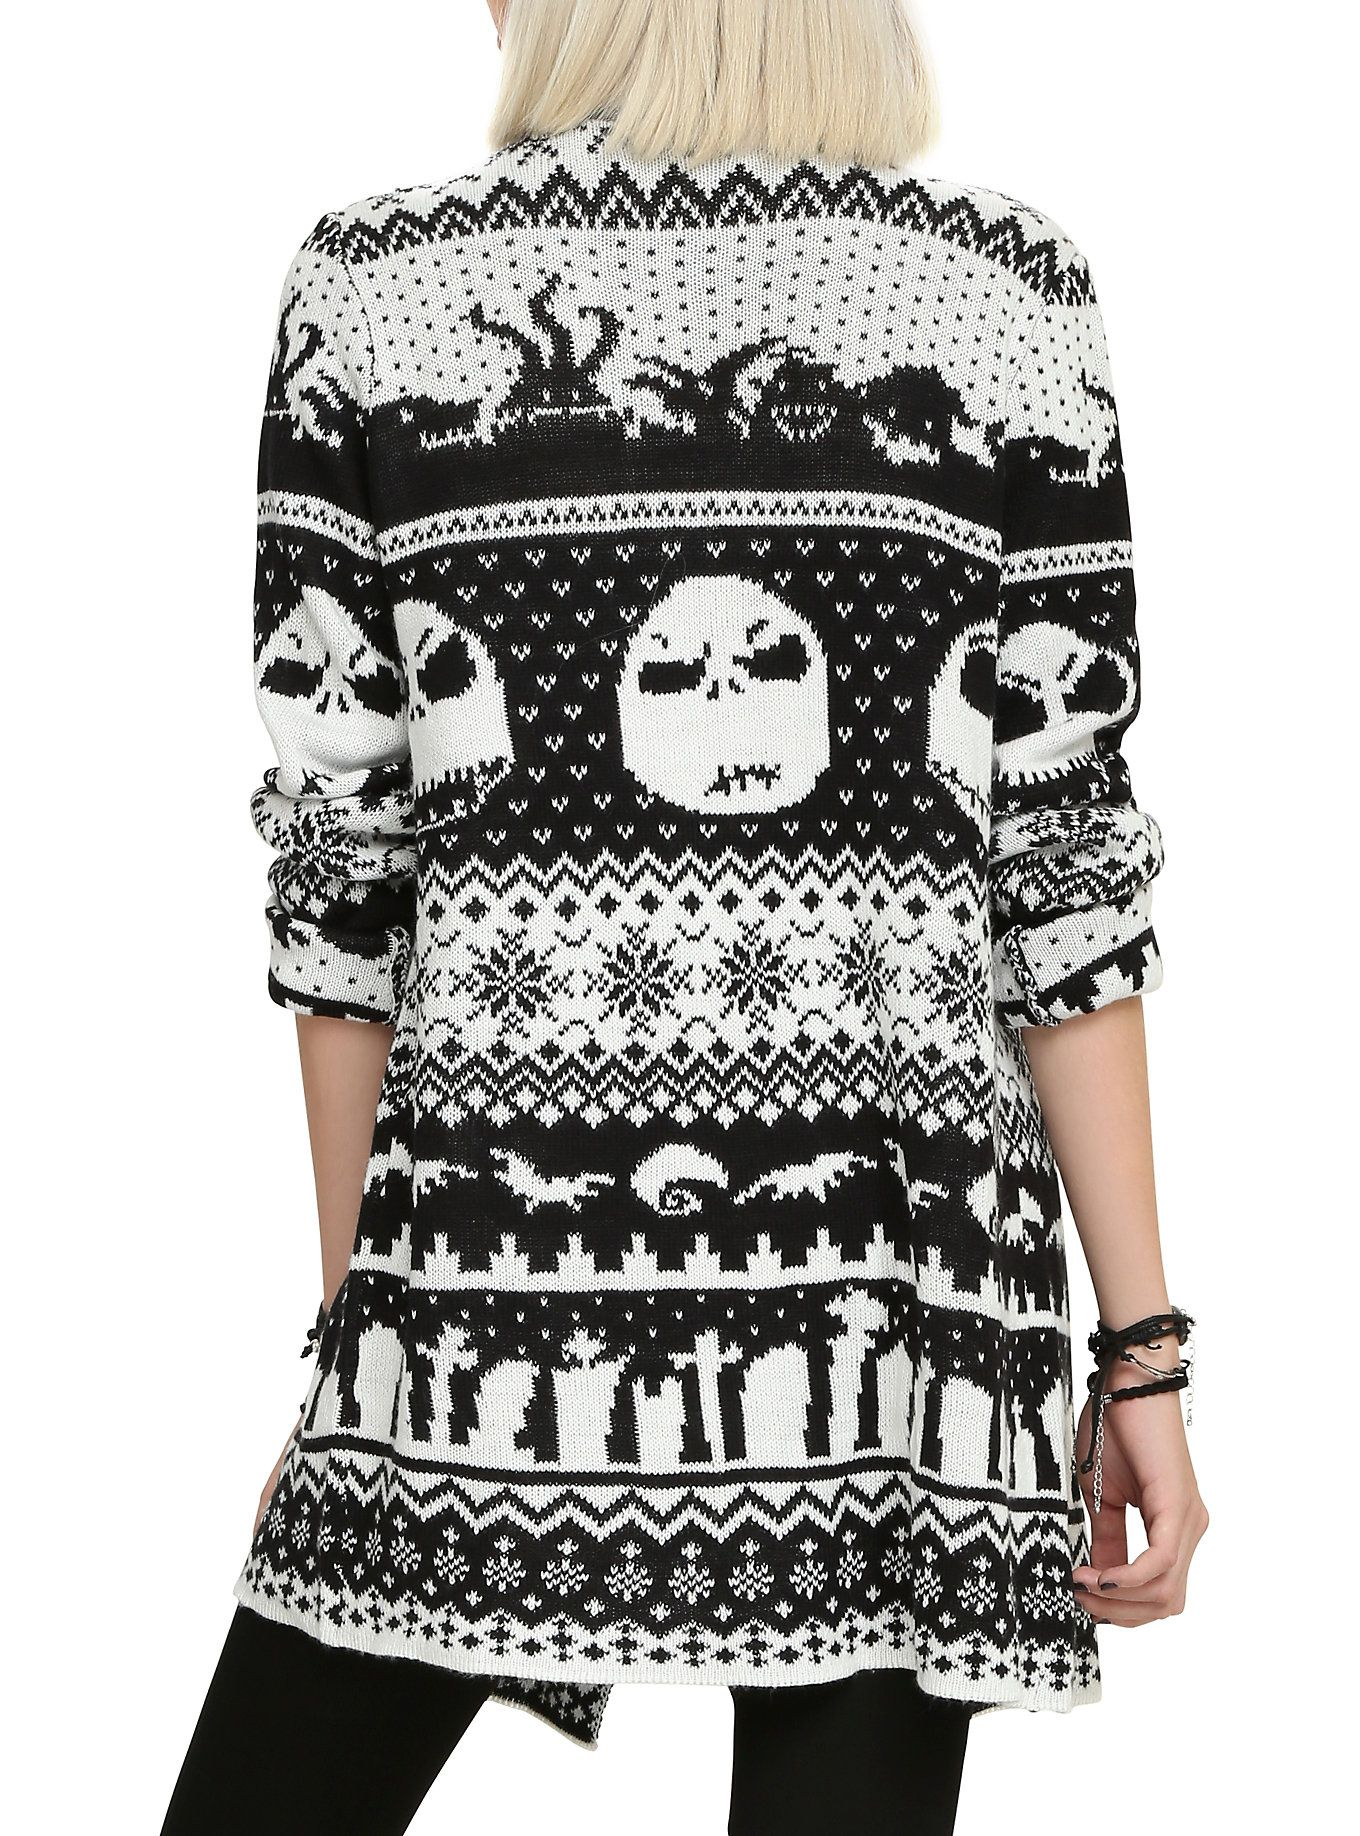 The Nightmare Before Christmas Fair Isle Cardigan | Skeletons In My ...